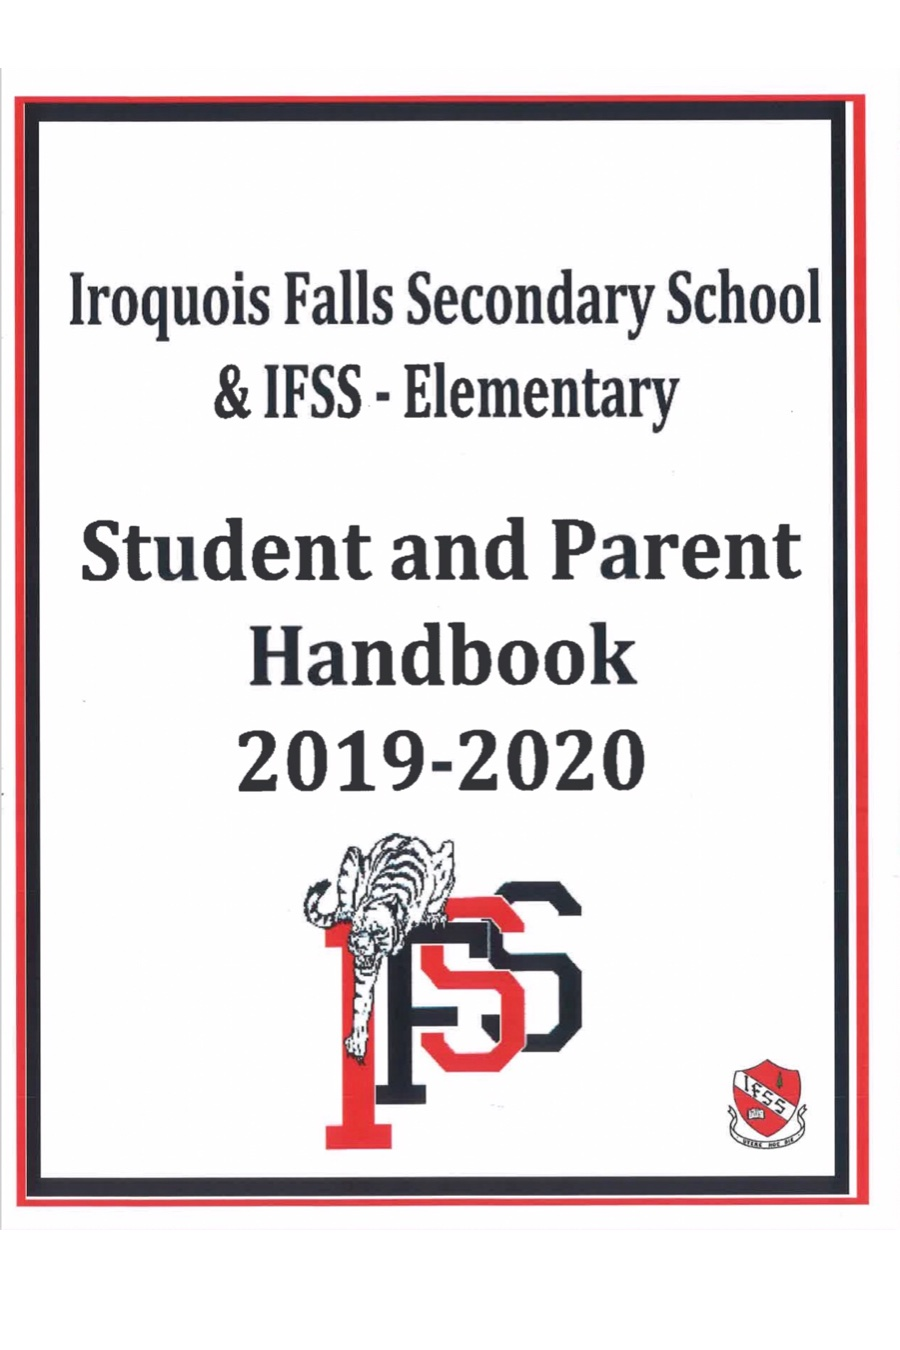 Student and Parent Handbook 2019-2020